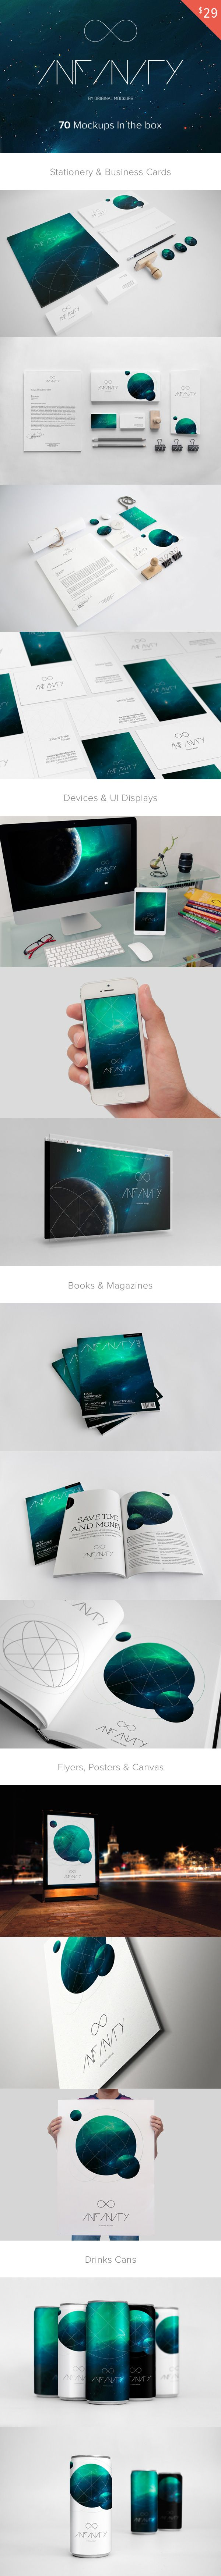 Infinity Mockups Bundle | GraphicBurger